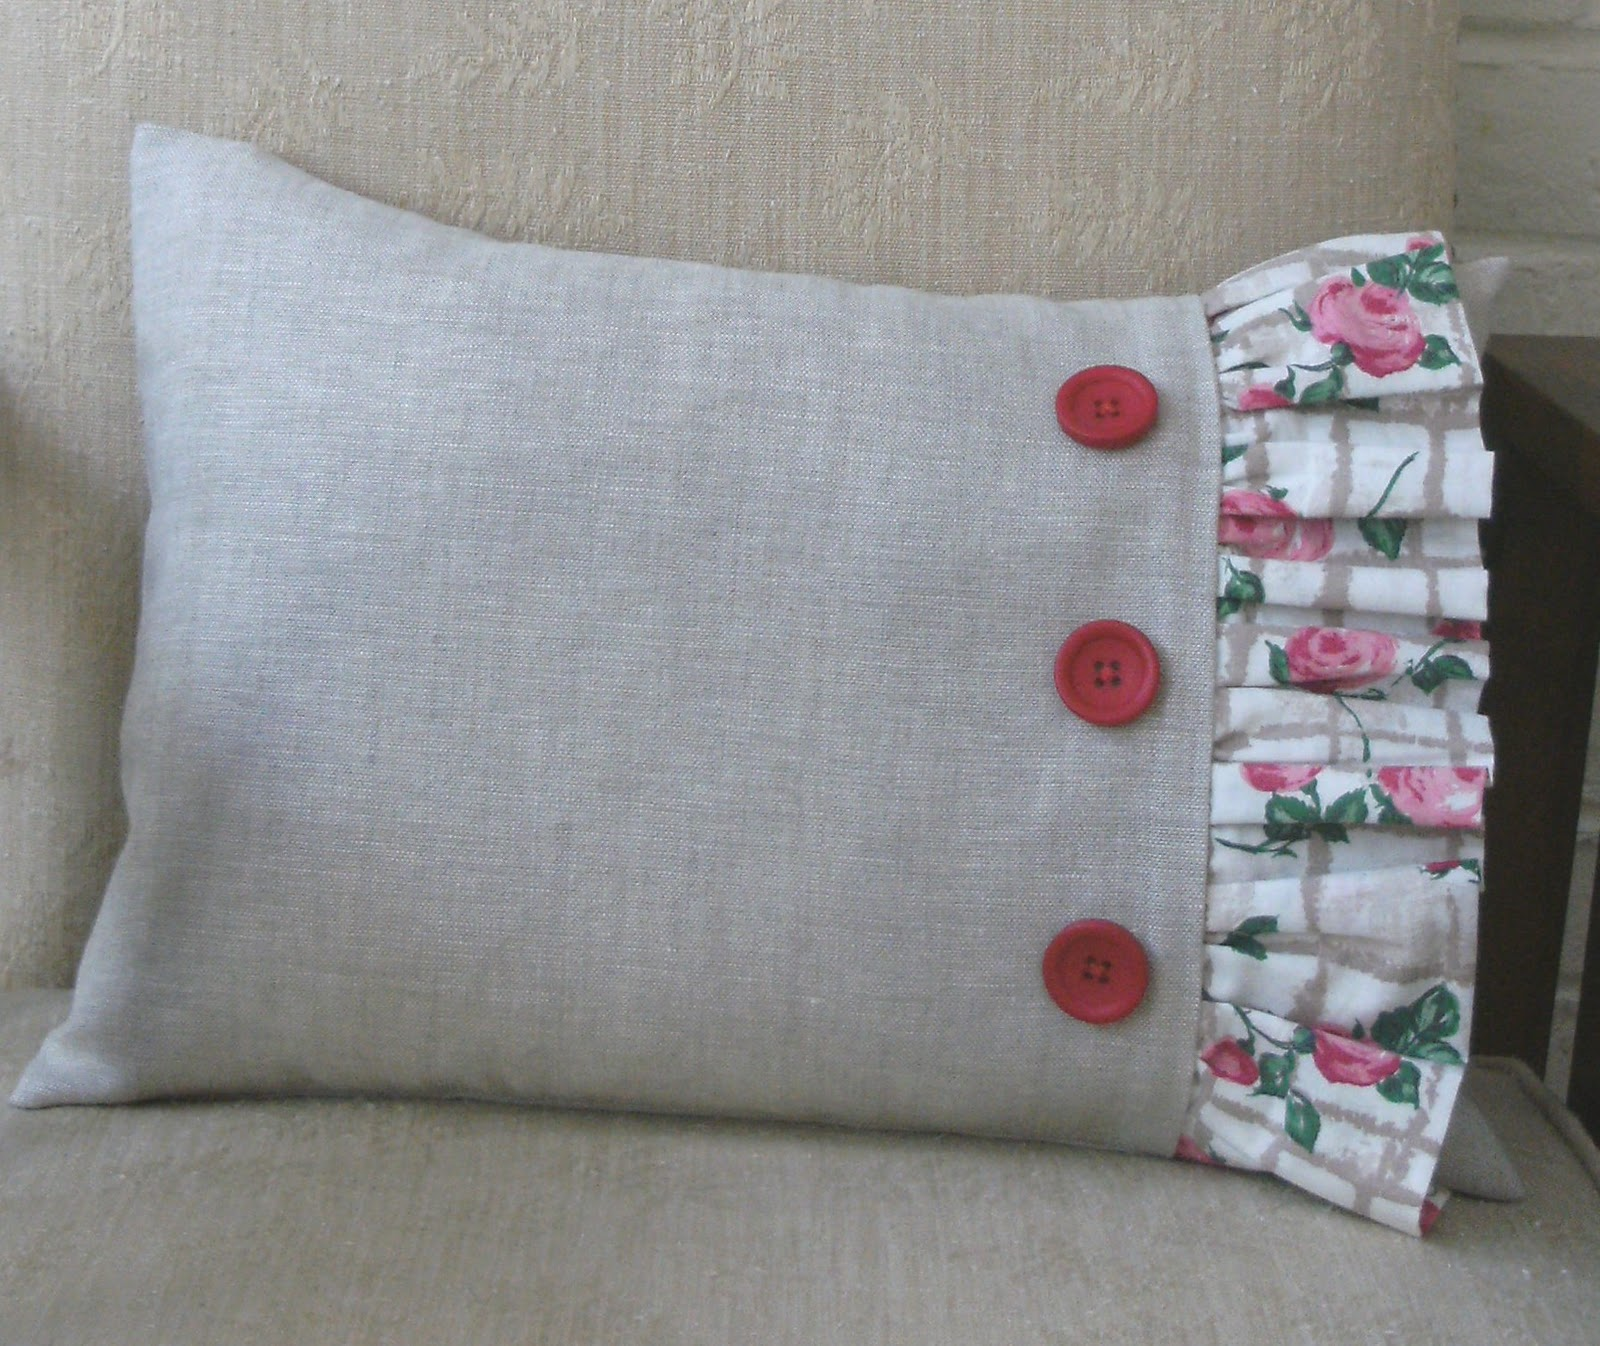 Sewing Sofa Cushion Covers Harden Sectional Sofas Sew Good By Deborah Make A Frilled